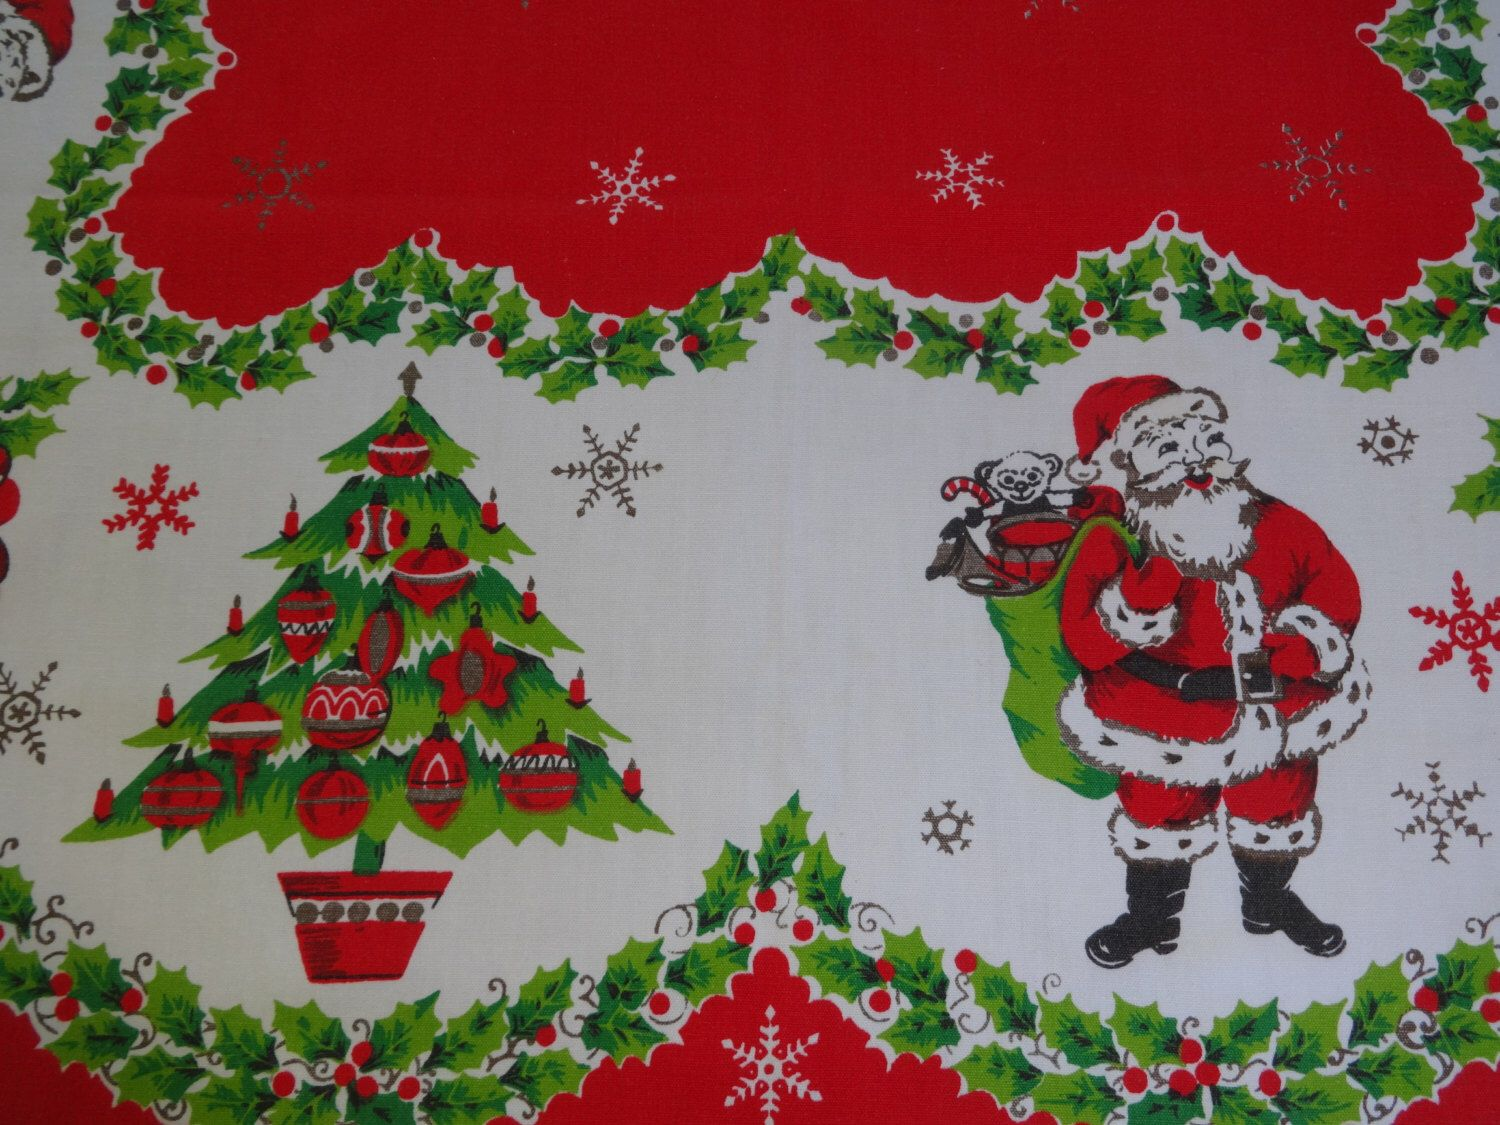 Vintage Christmas Tablecloth with Santa Candy Canes Christmas Tree with Shiny Brites Ornaments Atomic Snowflakes by VintageyItems on Etsy https://www.etsy.com/listing/464873504/vintage-christmas-tablecloth-with-santa